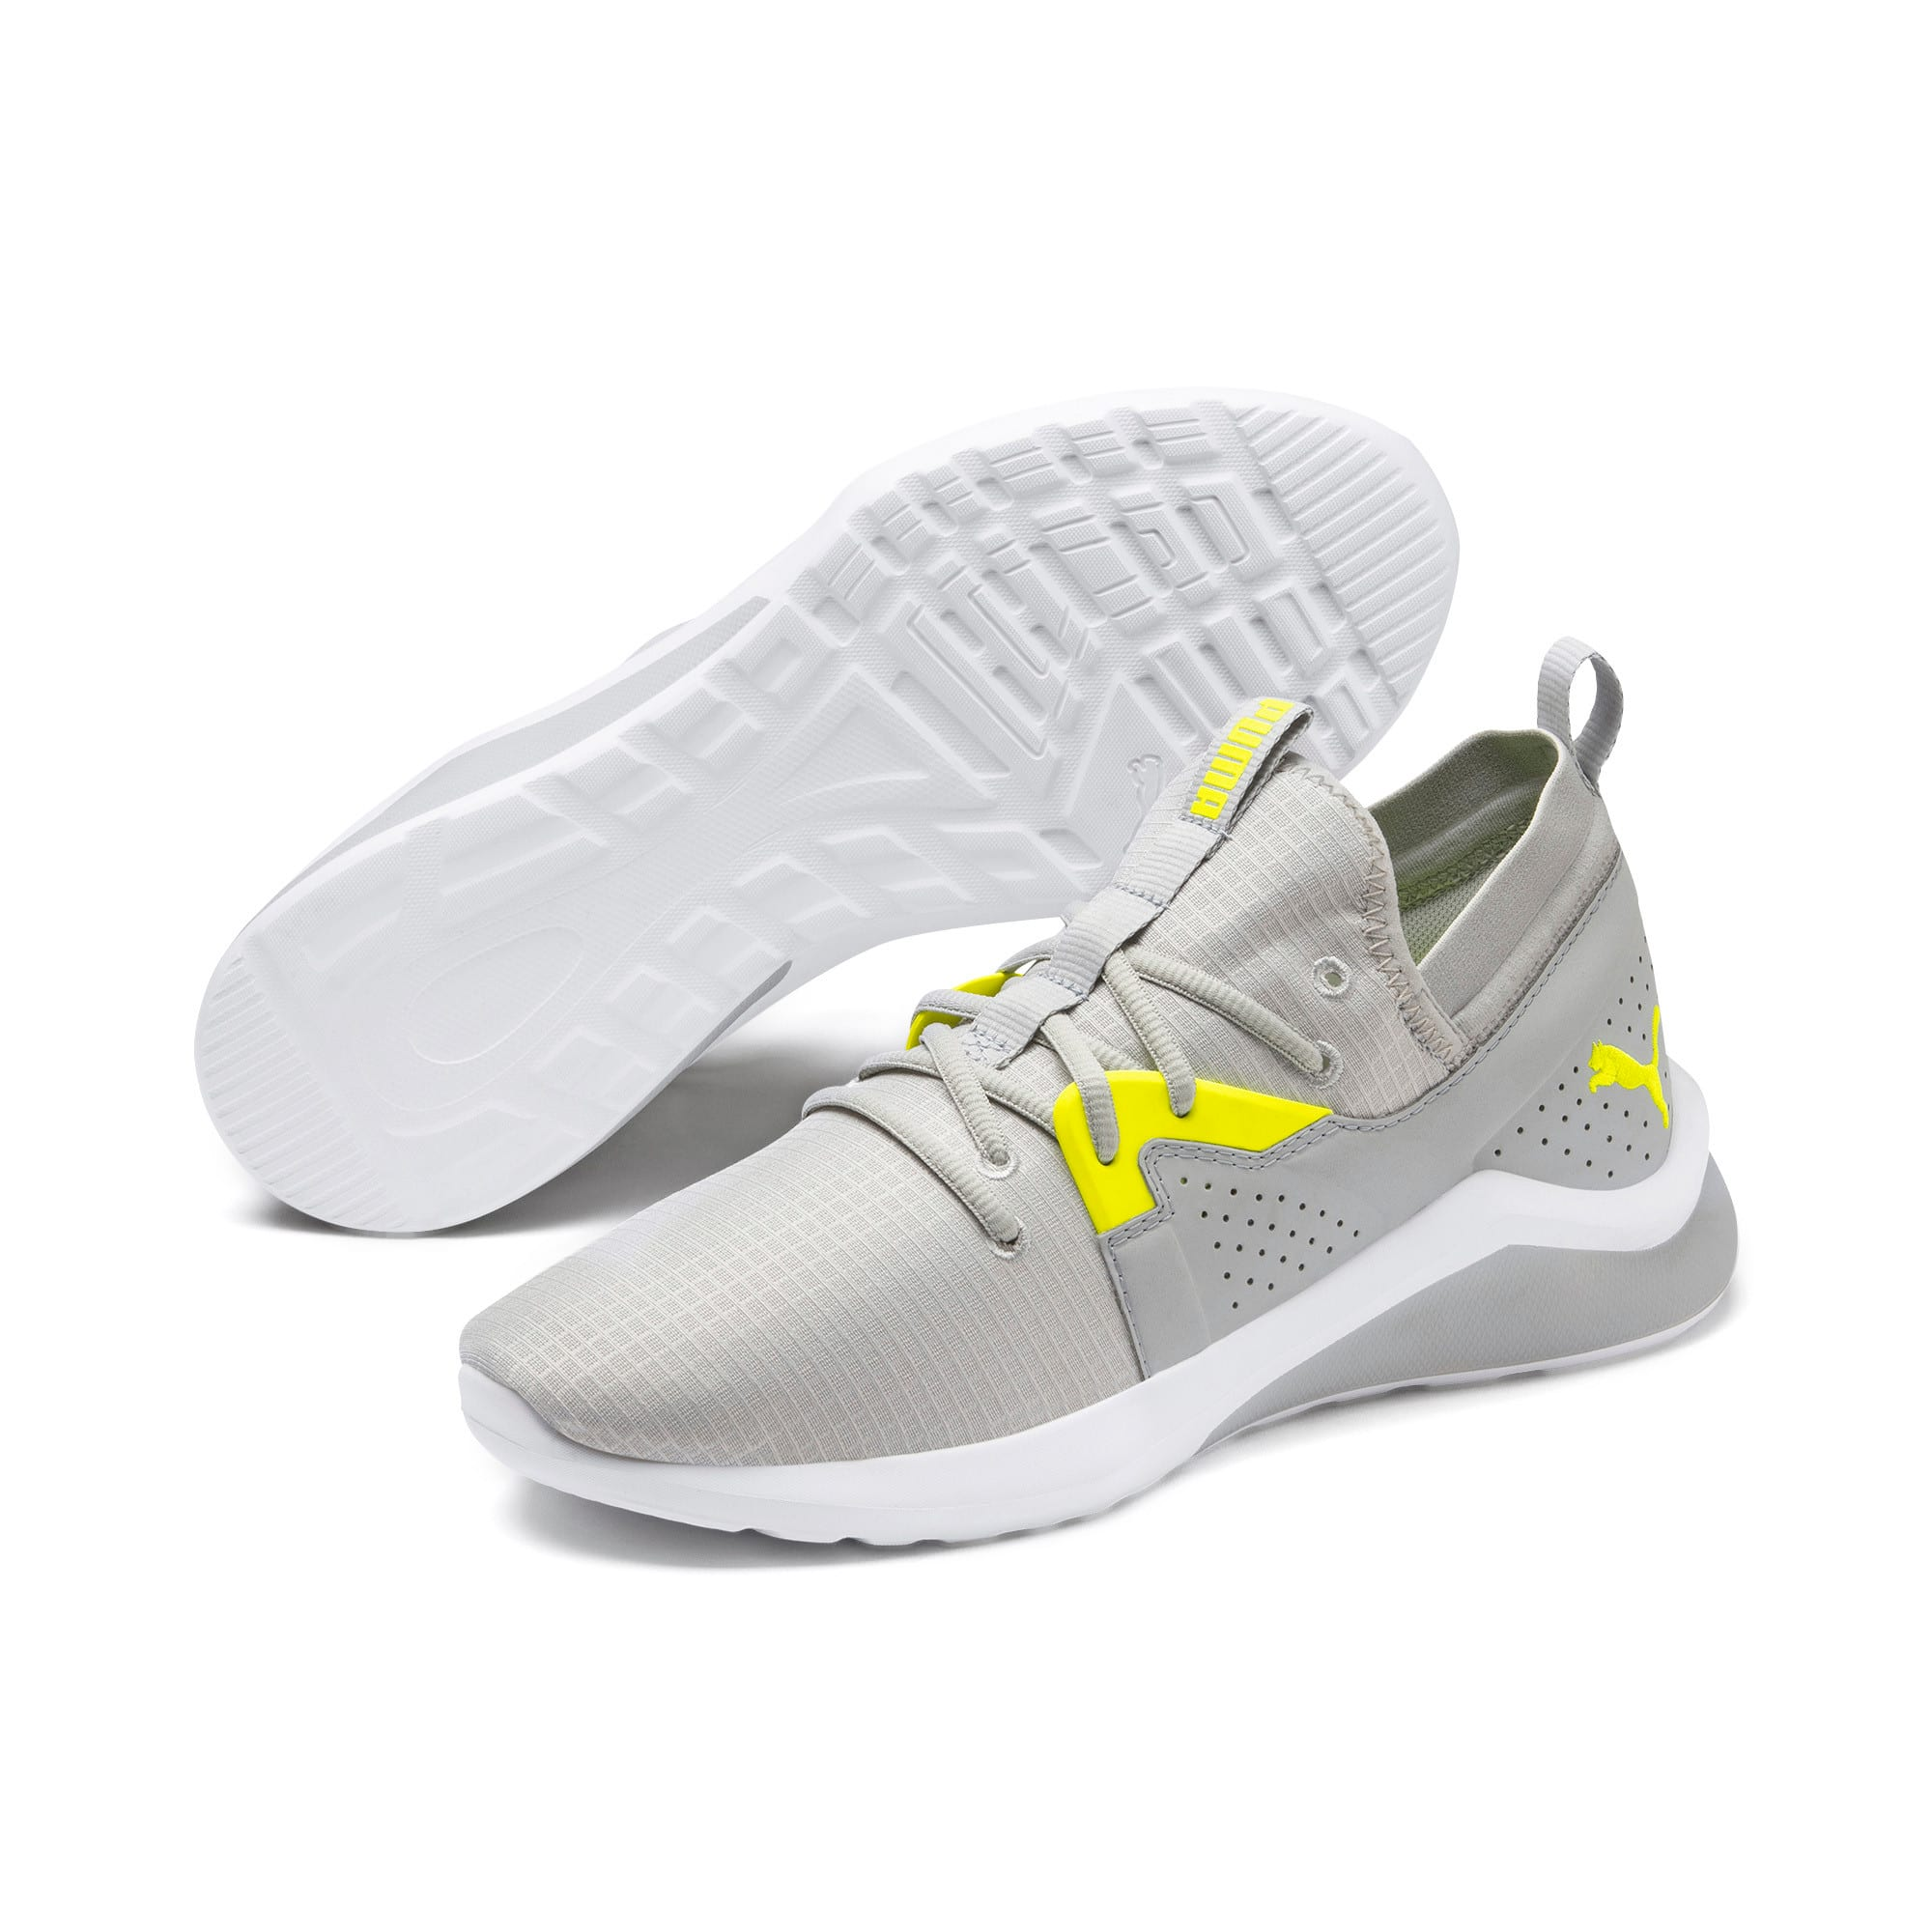 Thumbnail 2 of Emergence Lights Men's Training Shoes, High Rise-Yellow Alert, medium